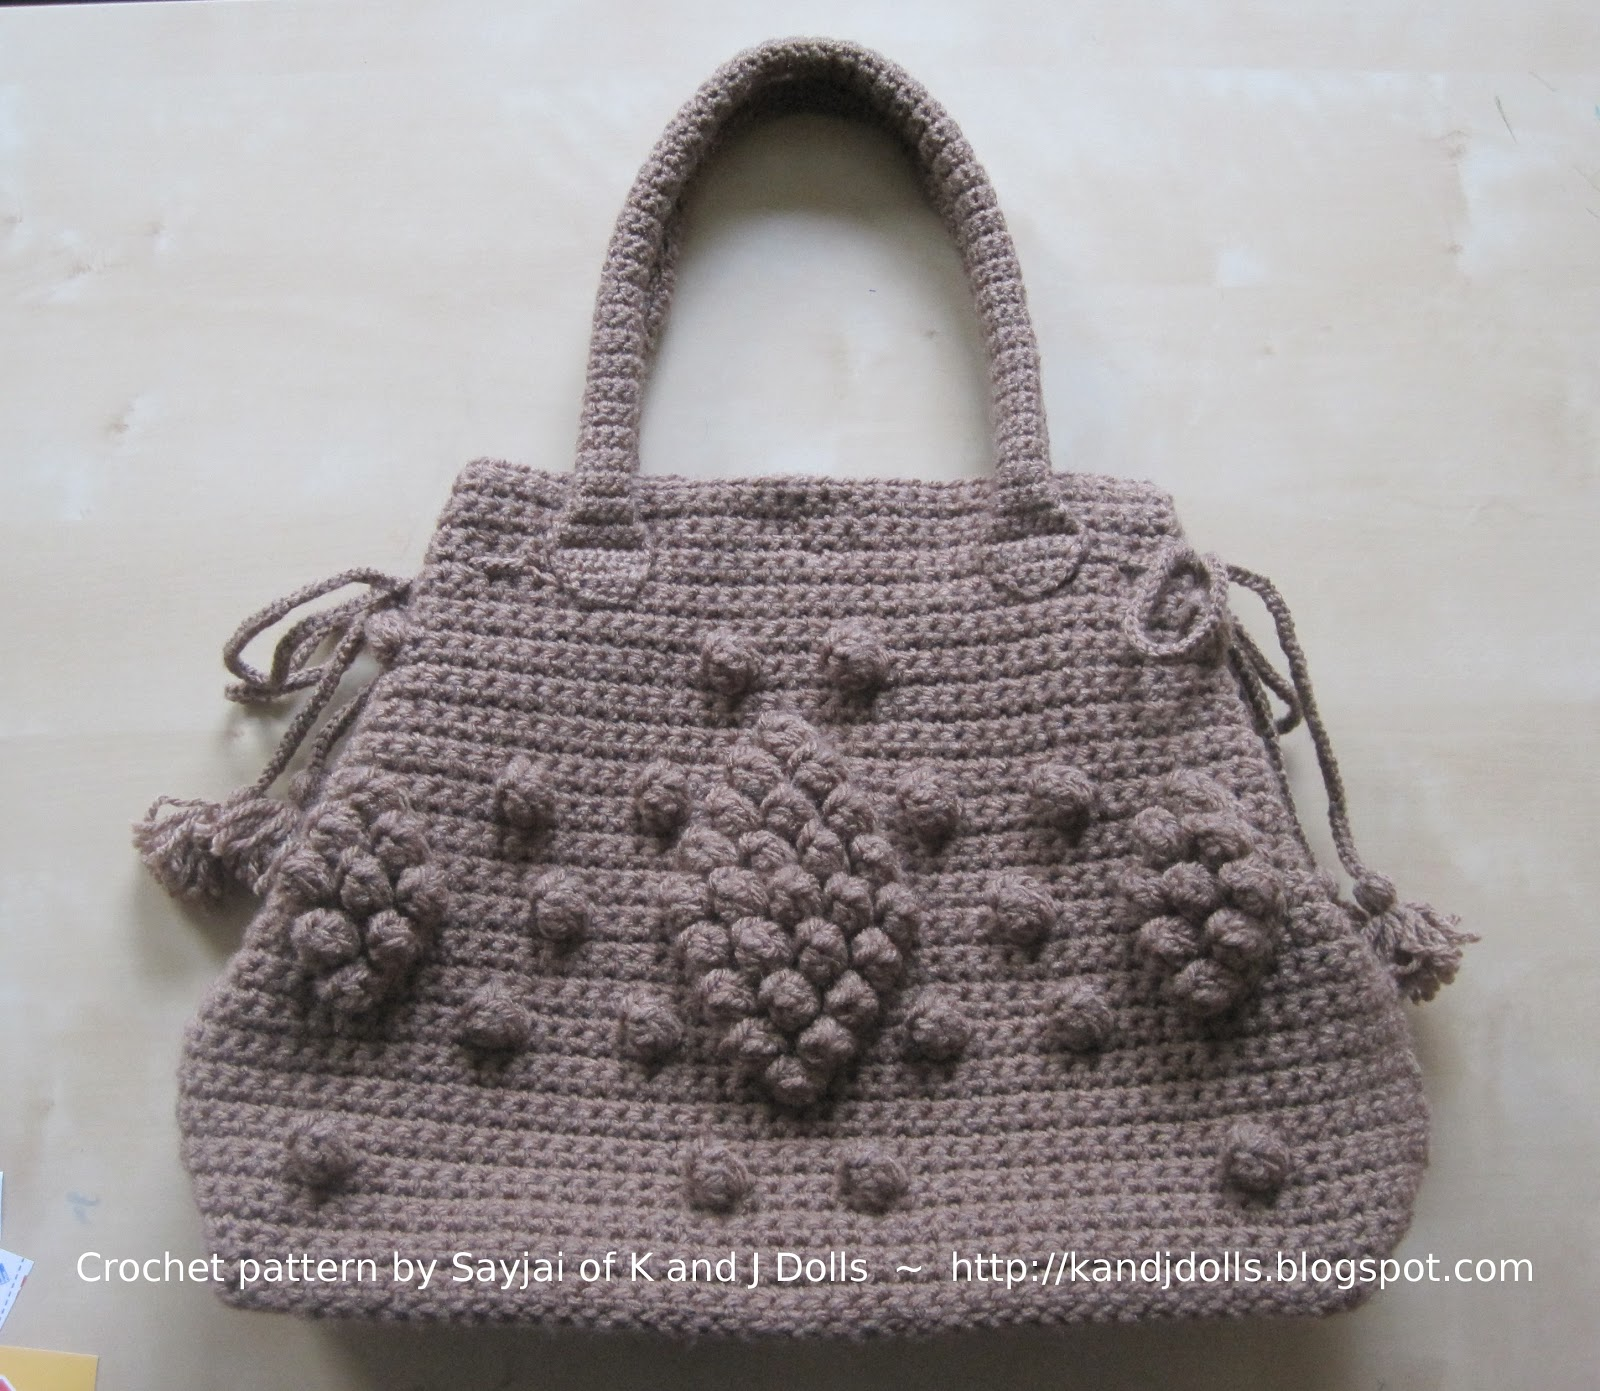 Free Crochet Handbag Patterns : Taupe Bag crochet pattern - Sayjai Amigurumi Crochet Patterns ~ K and ...